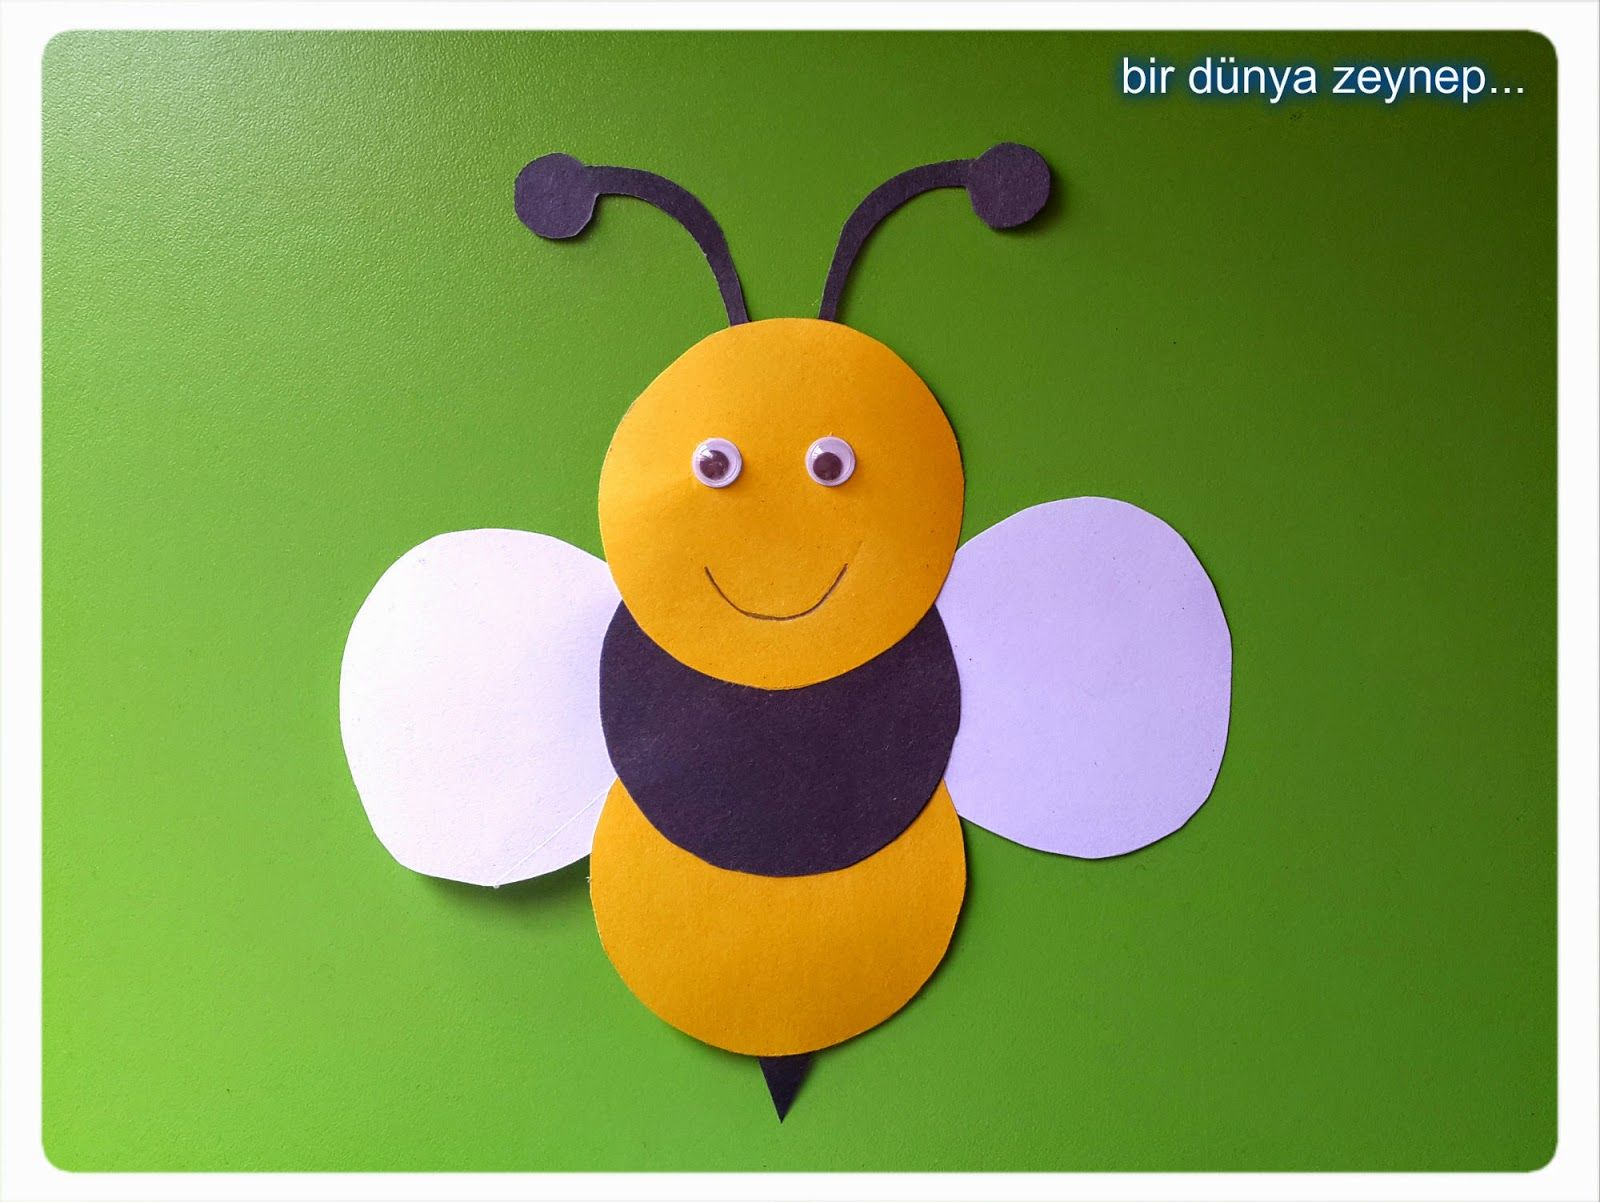 Related image | Oyunlar | Pinterest | Bee crafts, Bees and Craft